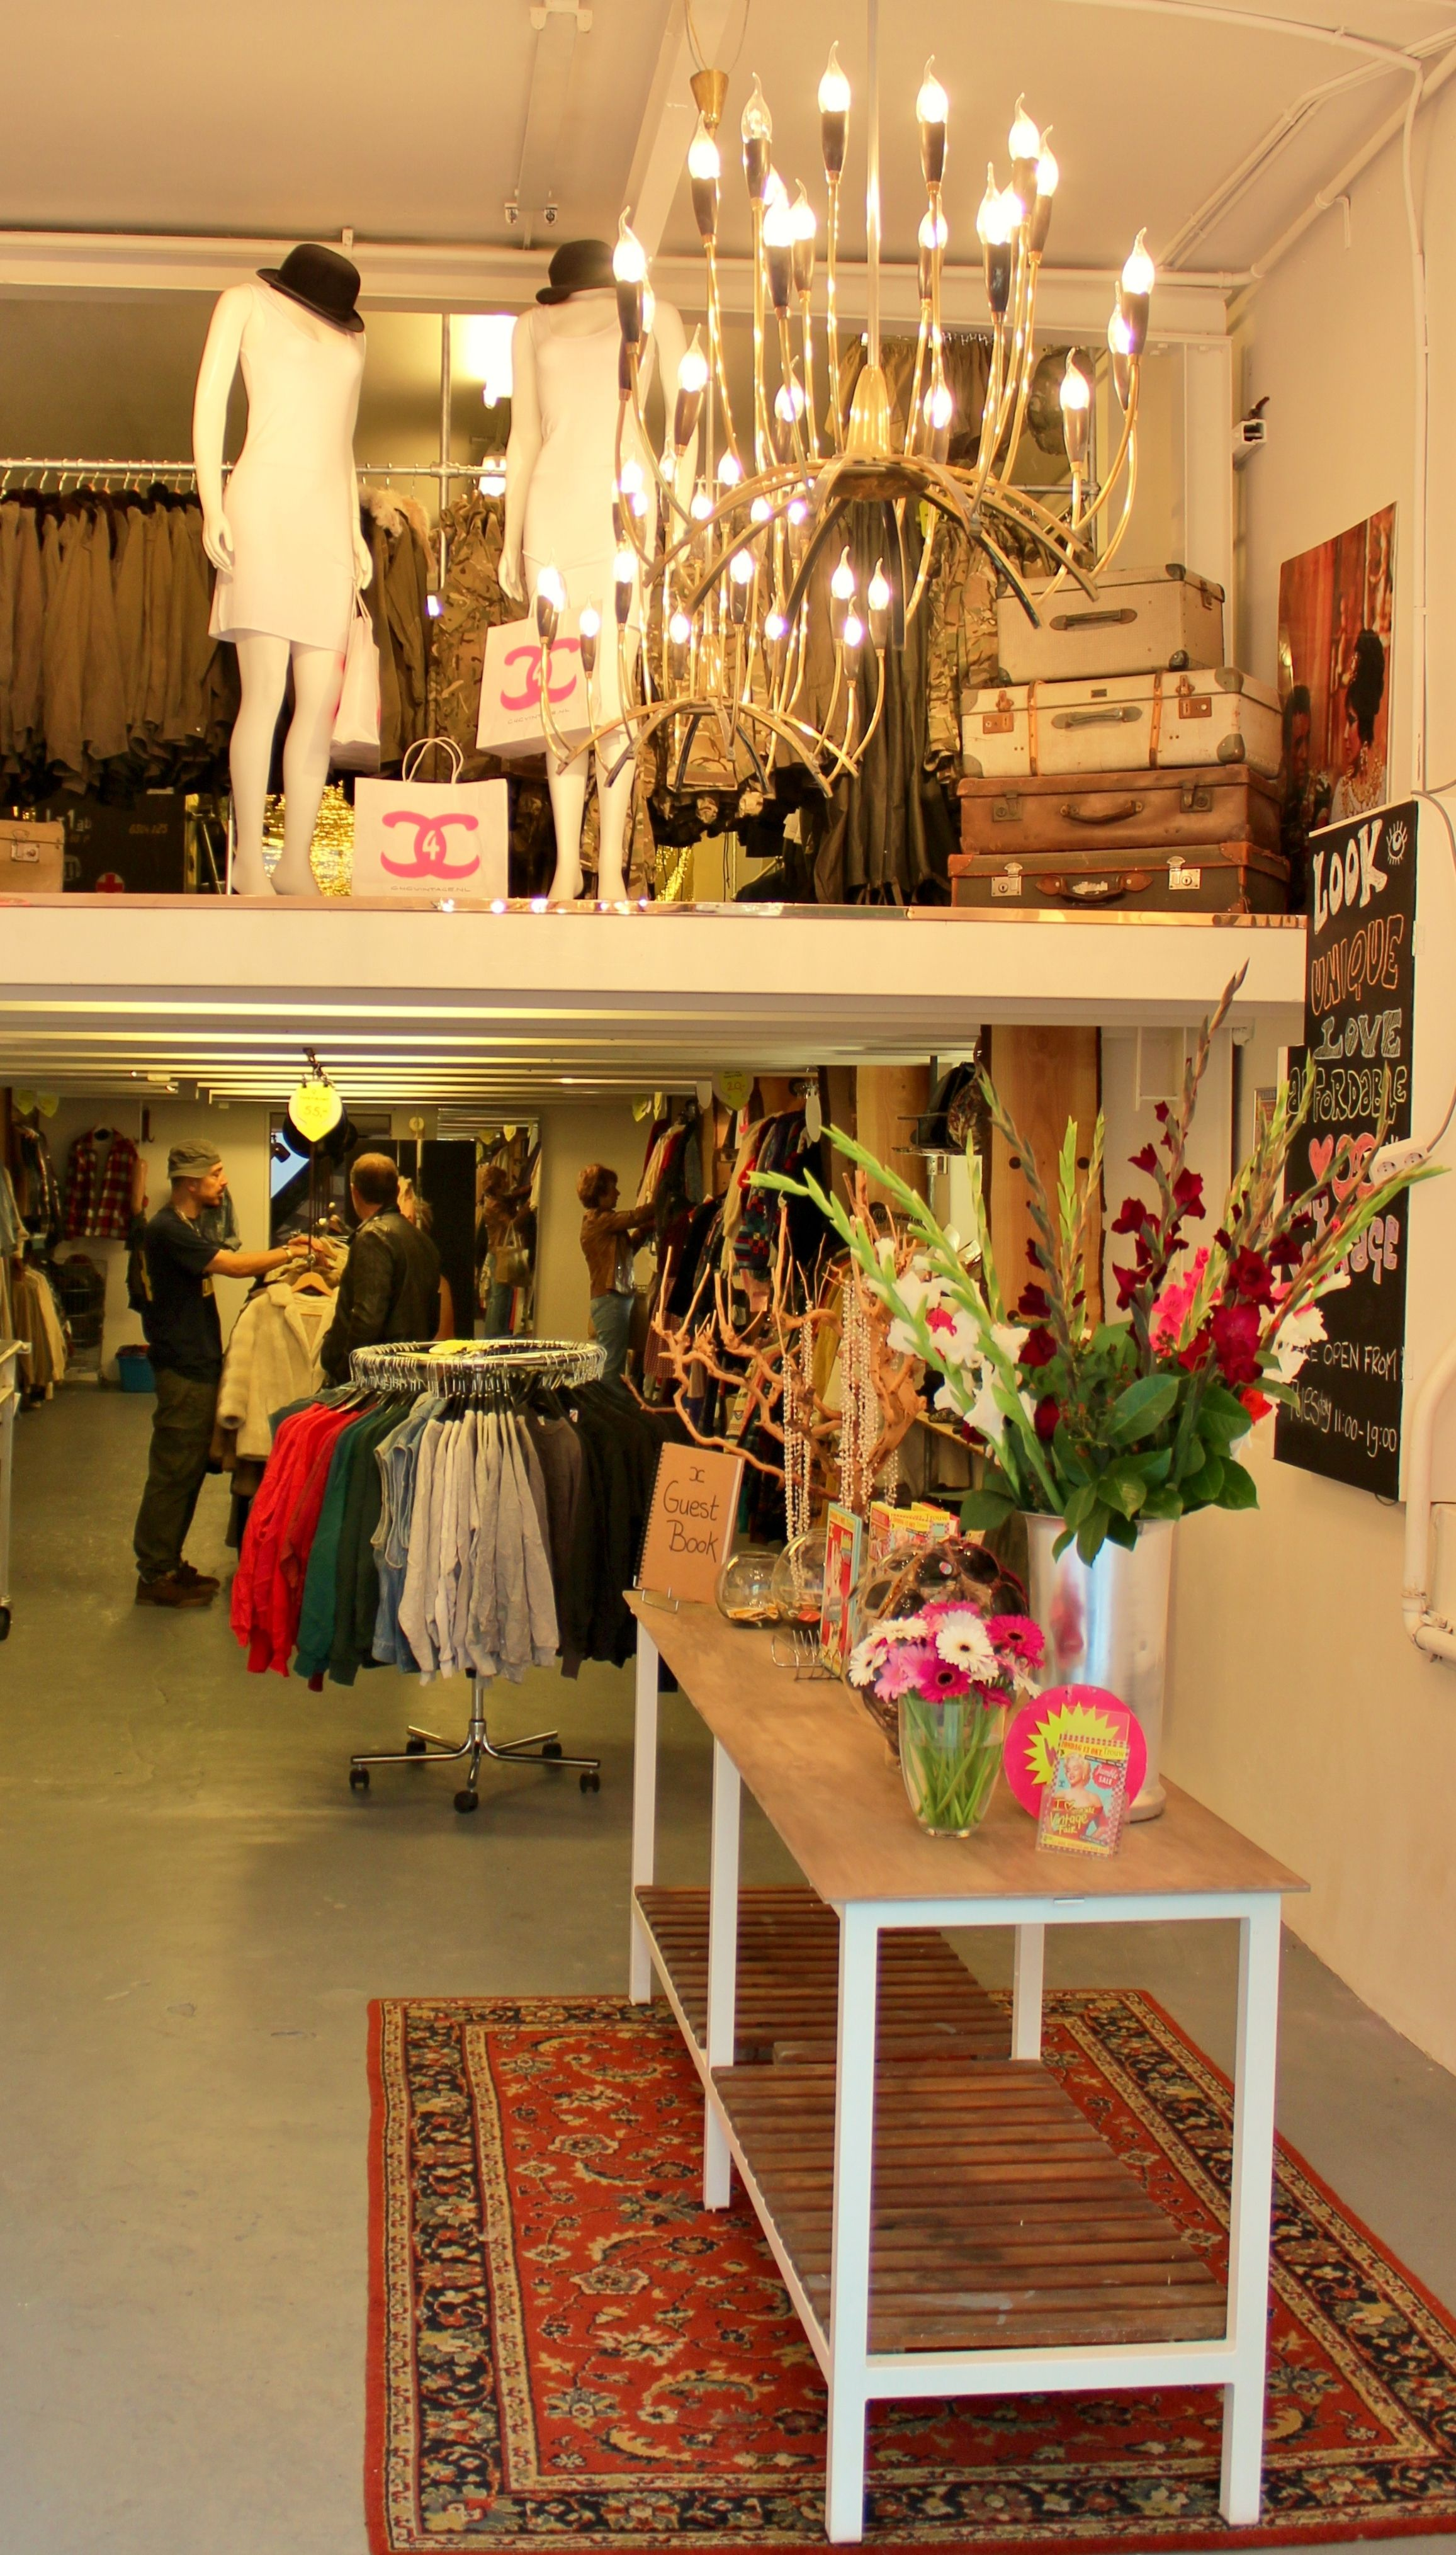 VINTAGE WEARHOUSE AMSTERDAM YES! WERE OPEN Every Monday